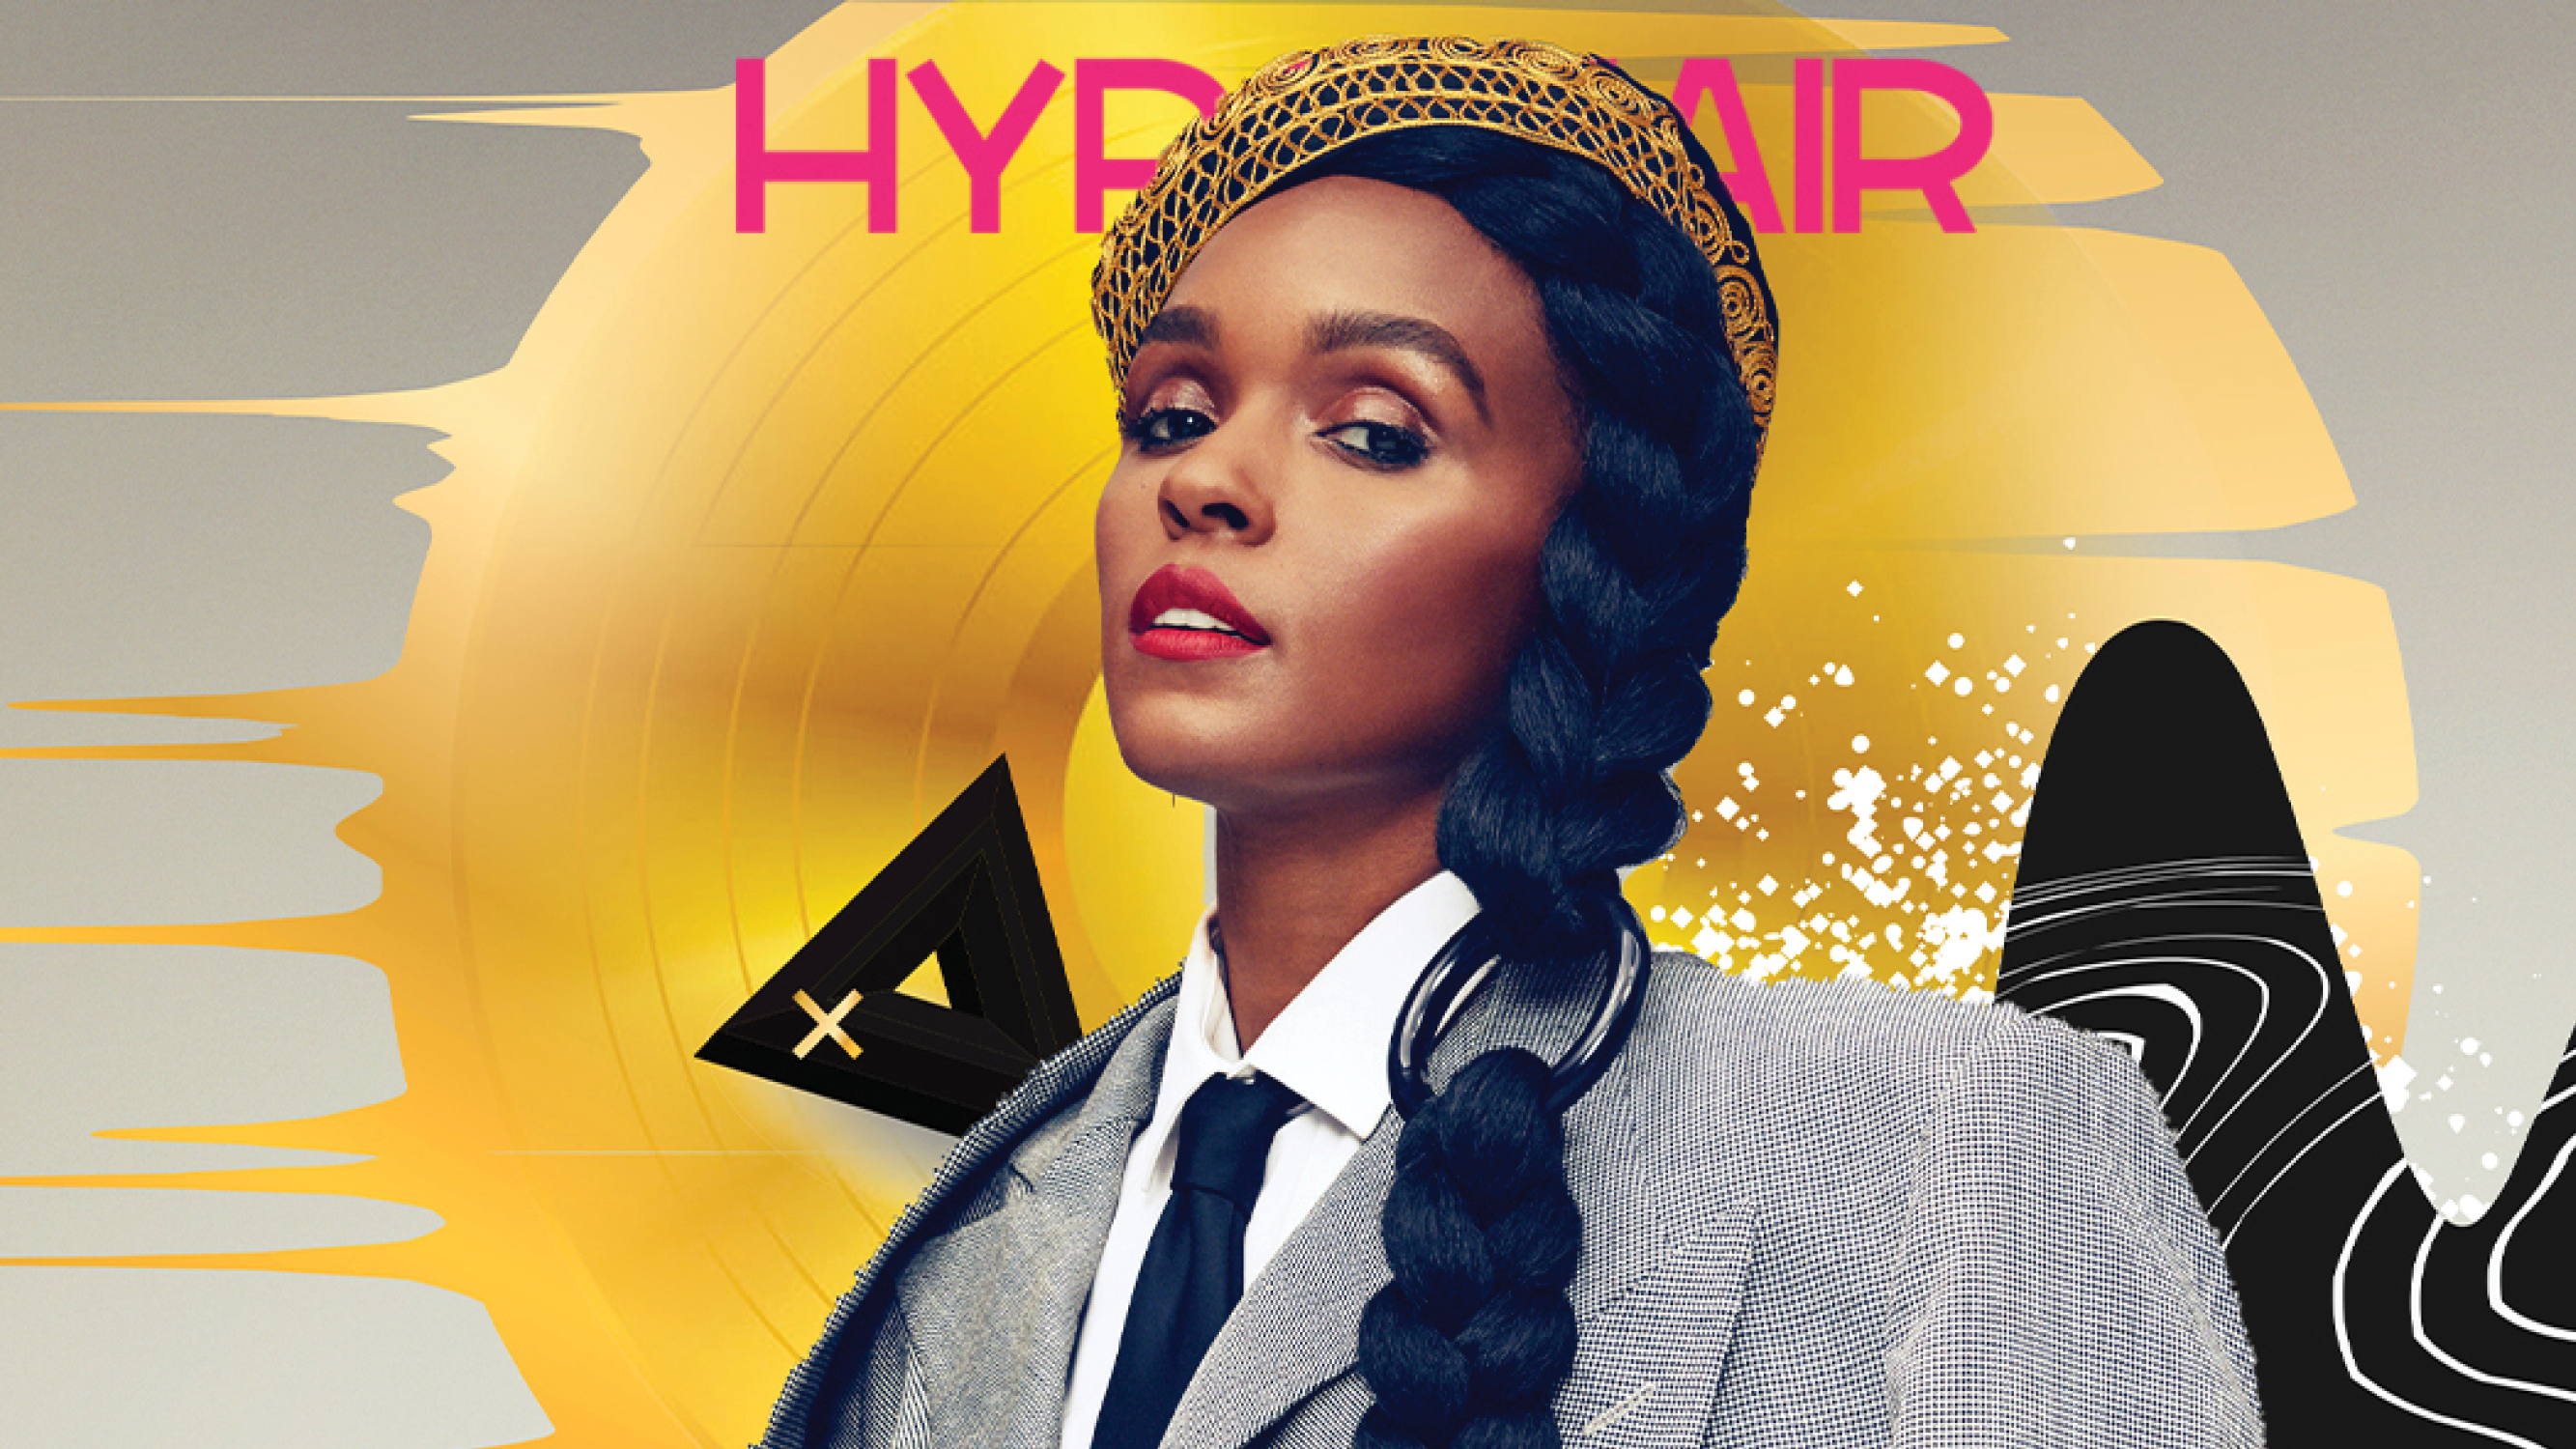 Janelle Monáe X Hype Hair May 2019